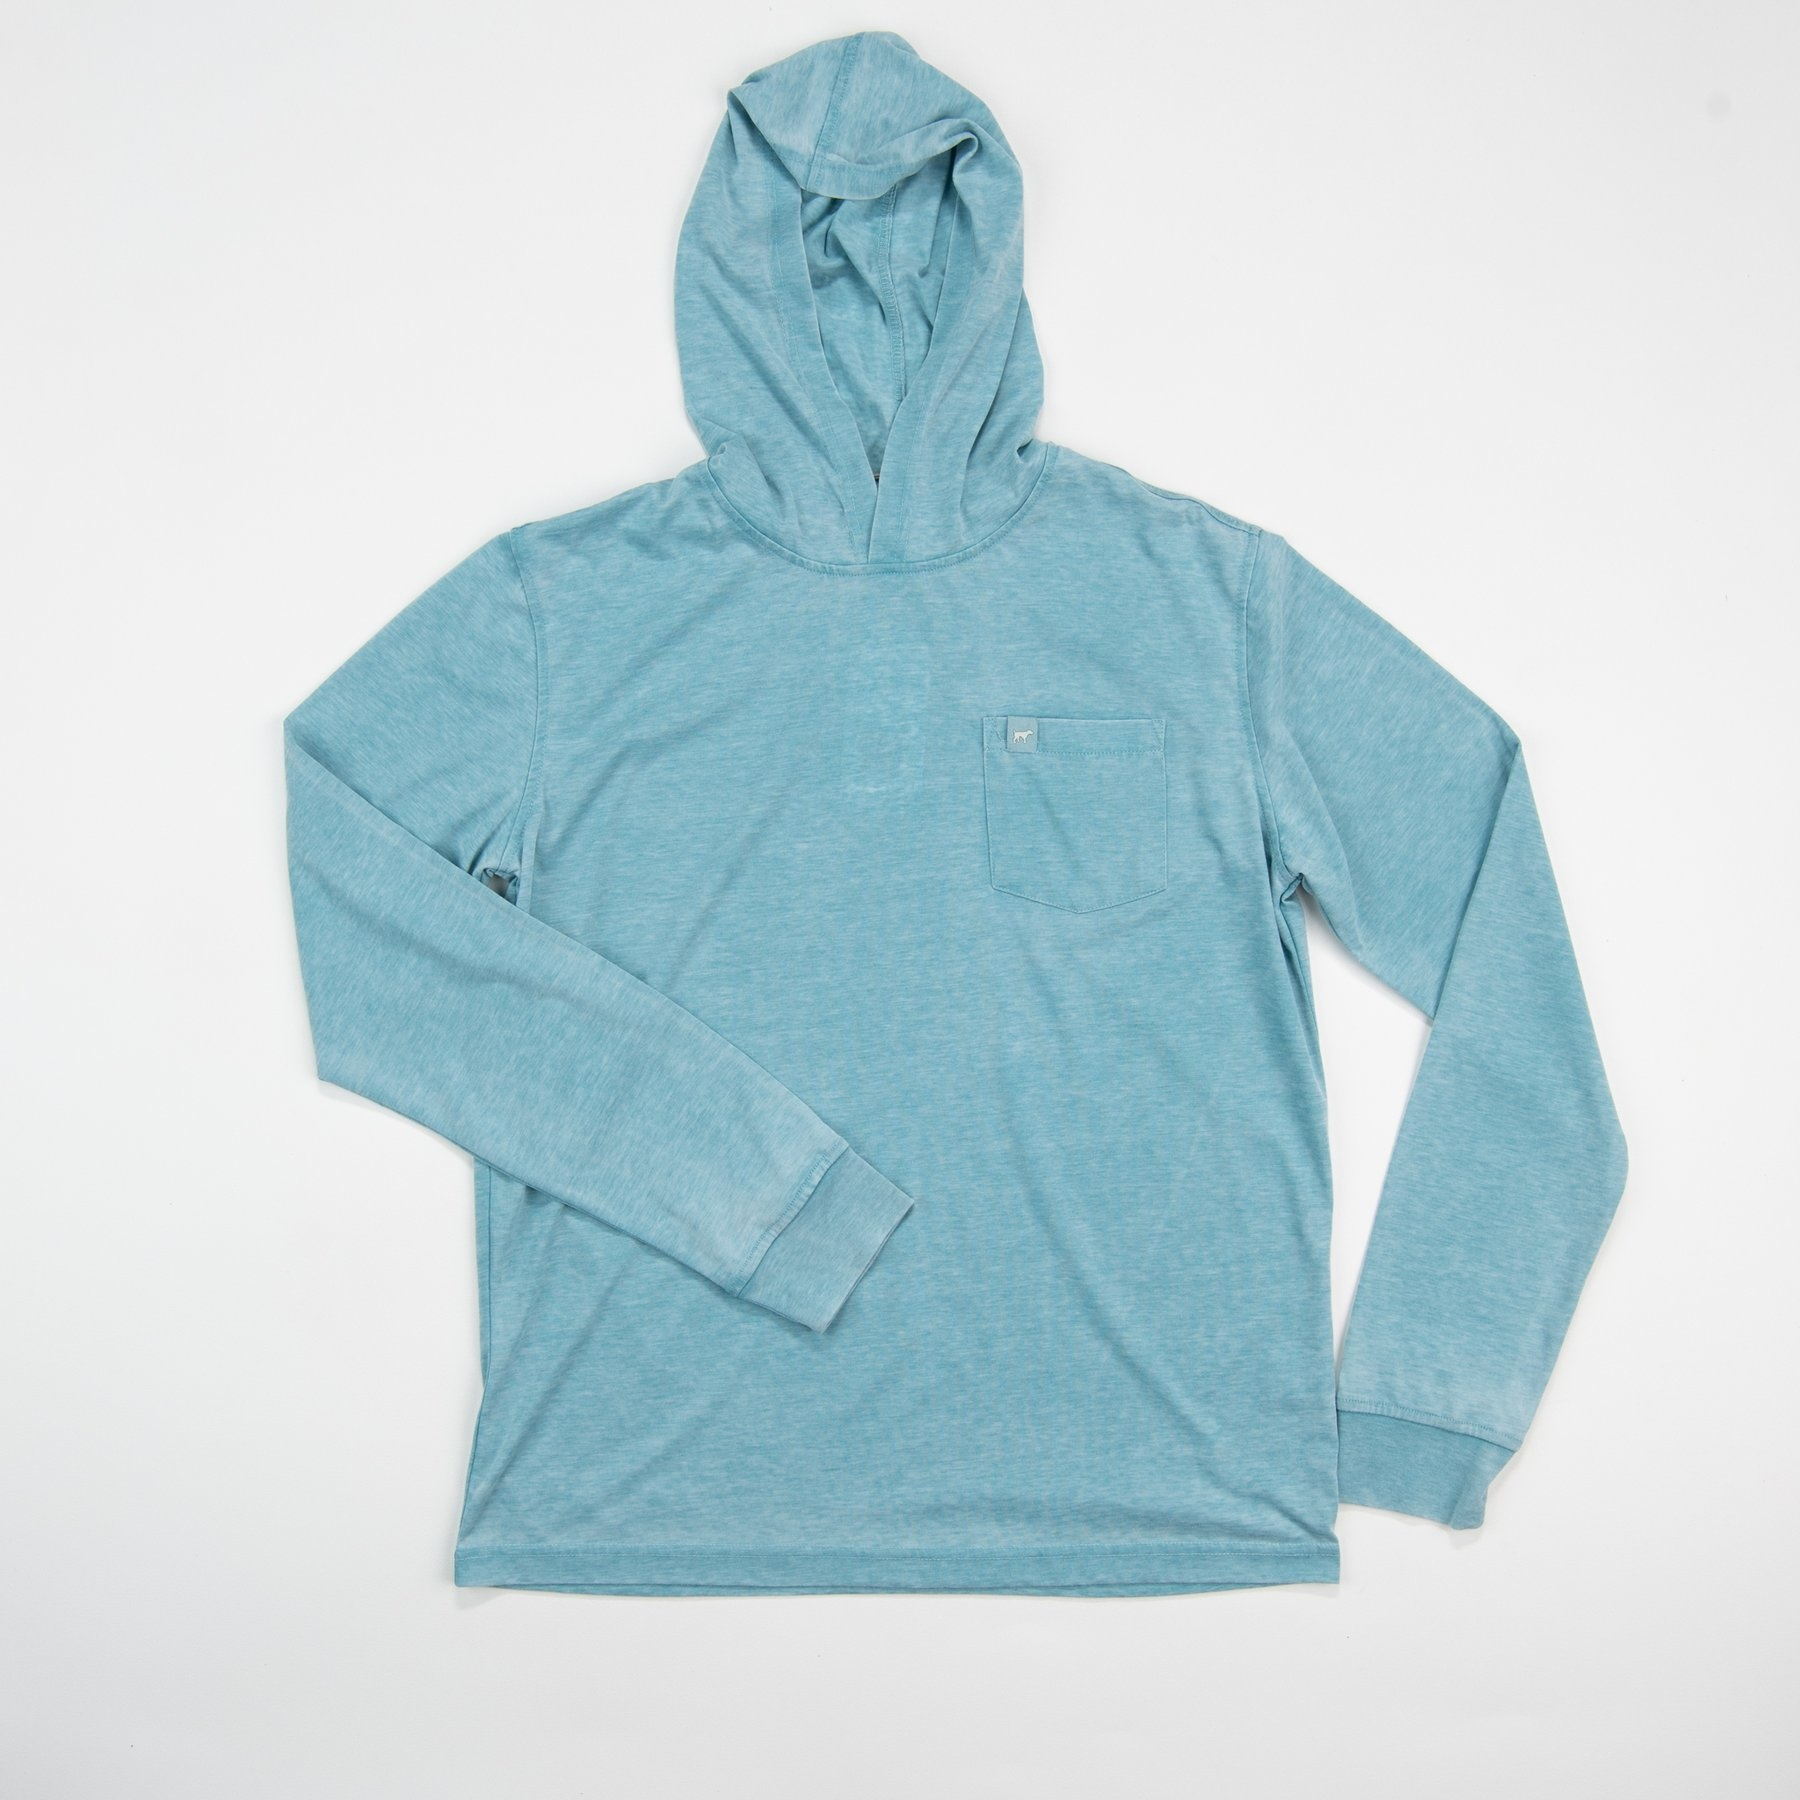 Southern Point Co. Oceanside Hoodie